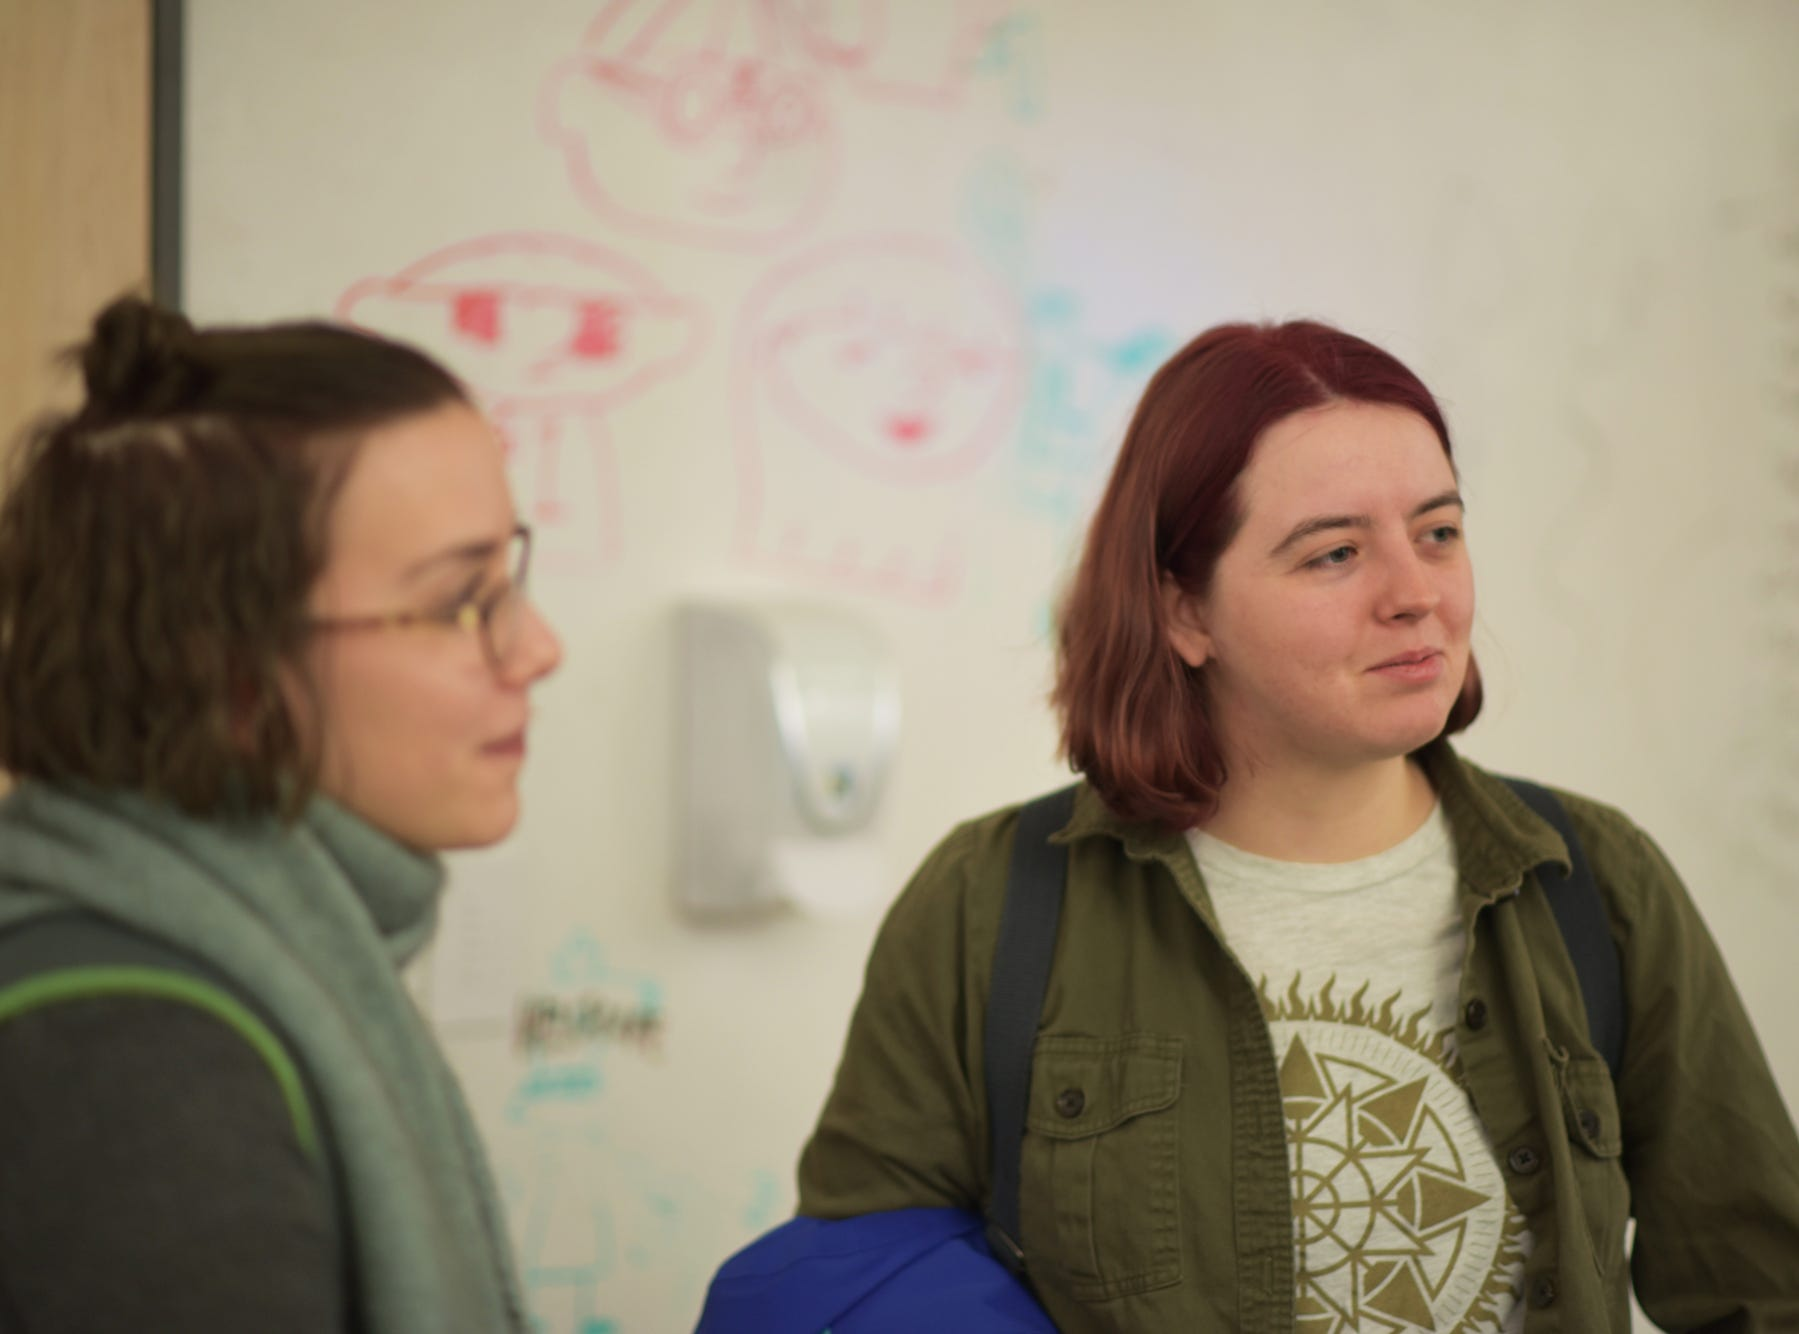 Amila Nuhodzic, 27, of Burlington,  stands in the foreground with Jennifer Carlin, 22, of Hyattsville, Maryland. Carlin accepted an offer to join Insomniac Games in Burbank, California to work on Marvel's Spider-Man for PS4. She follows three alumni to Insomniac including: Charlie Carucci '18, Colton Orr '18 and Zach Bohn '12.